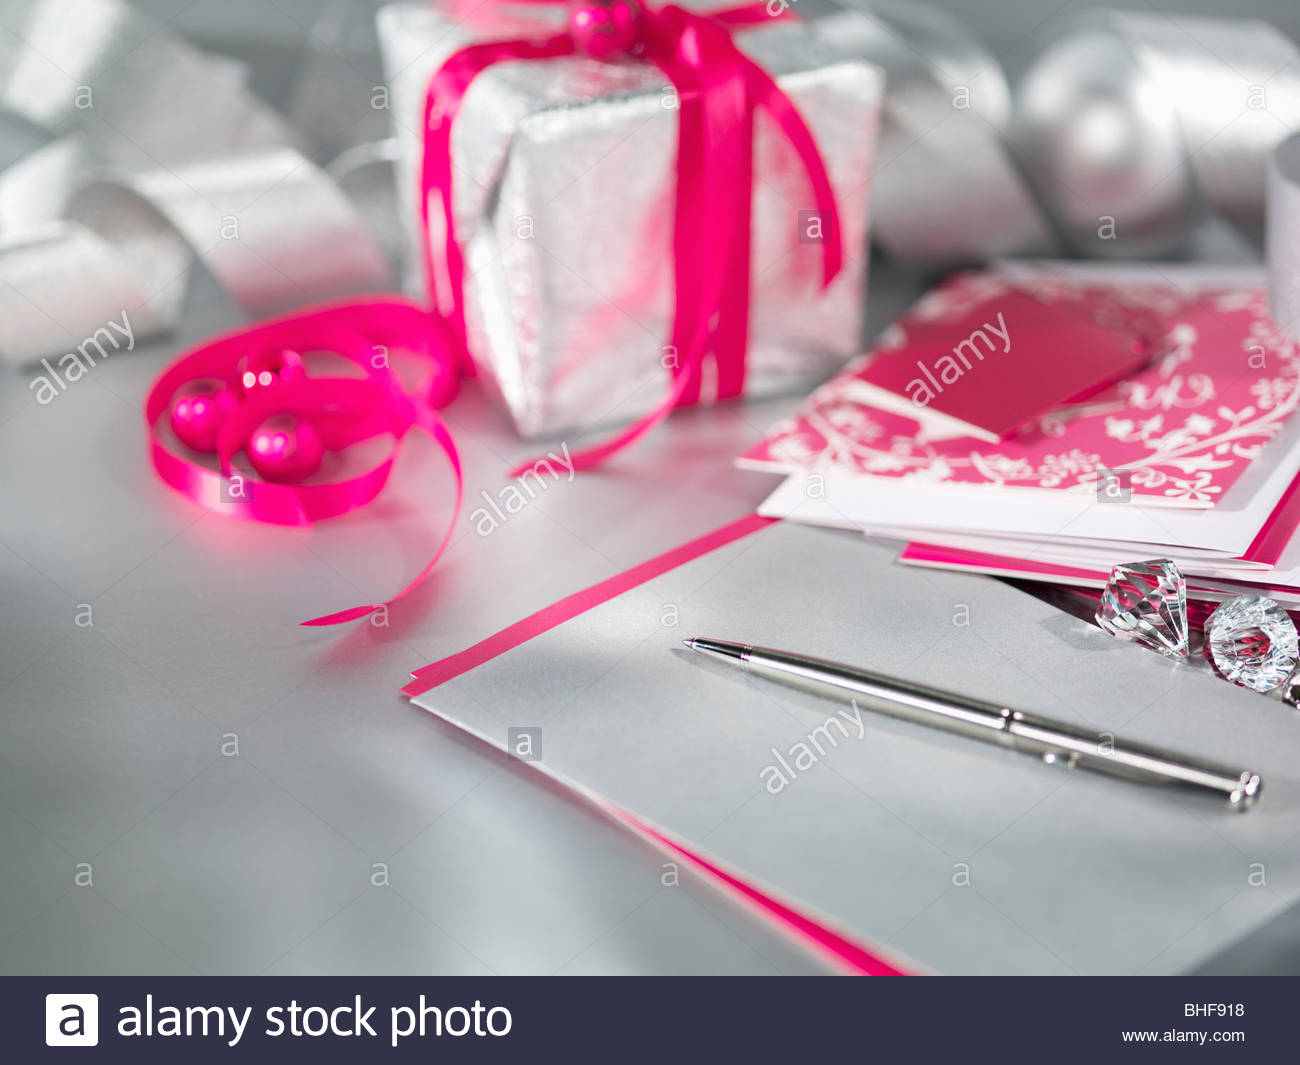 Christmas gifts with ribbon, pen and card Stock Photo: 27995892 - Alamy